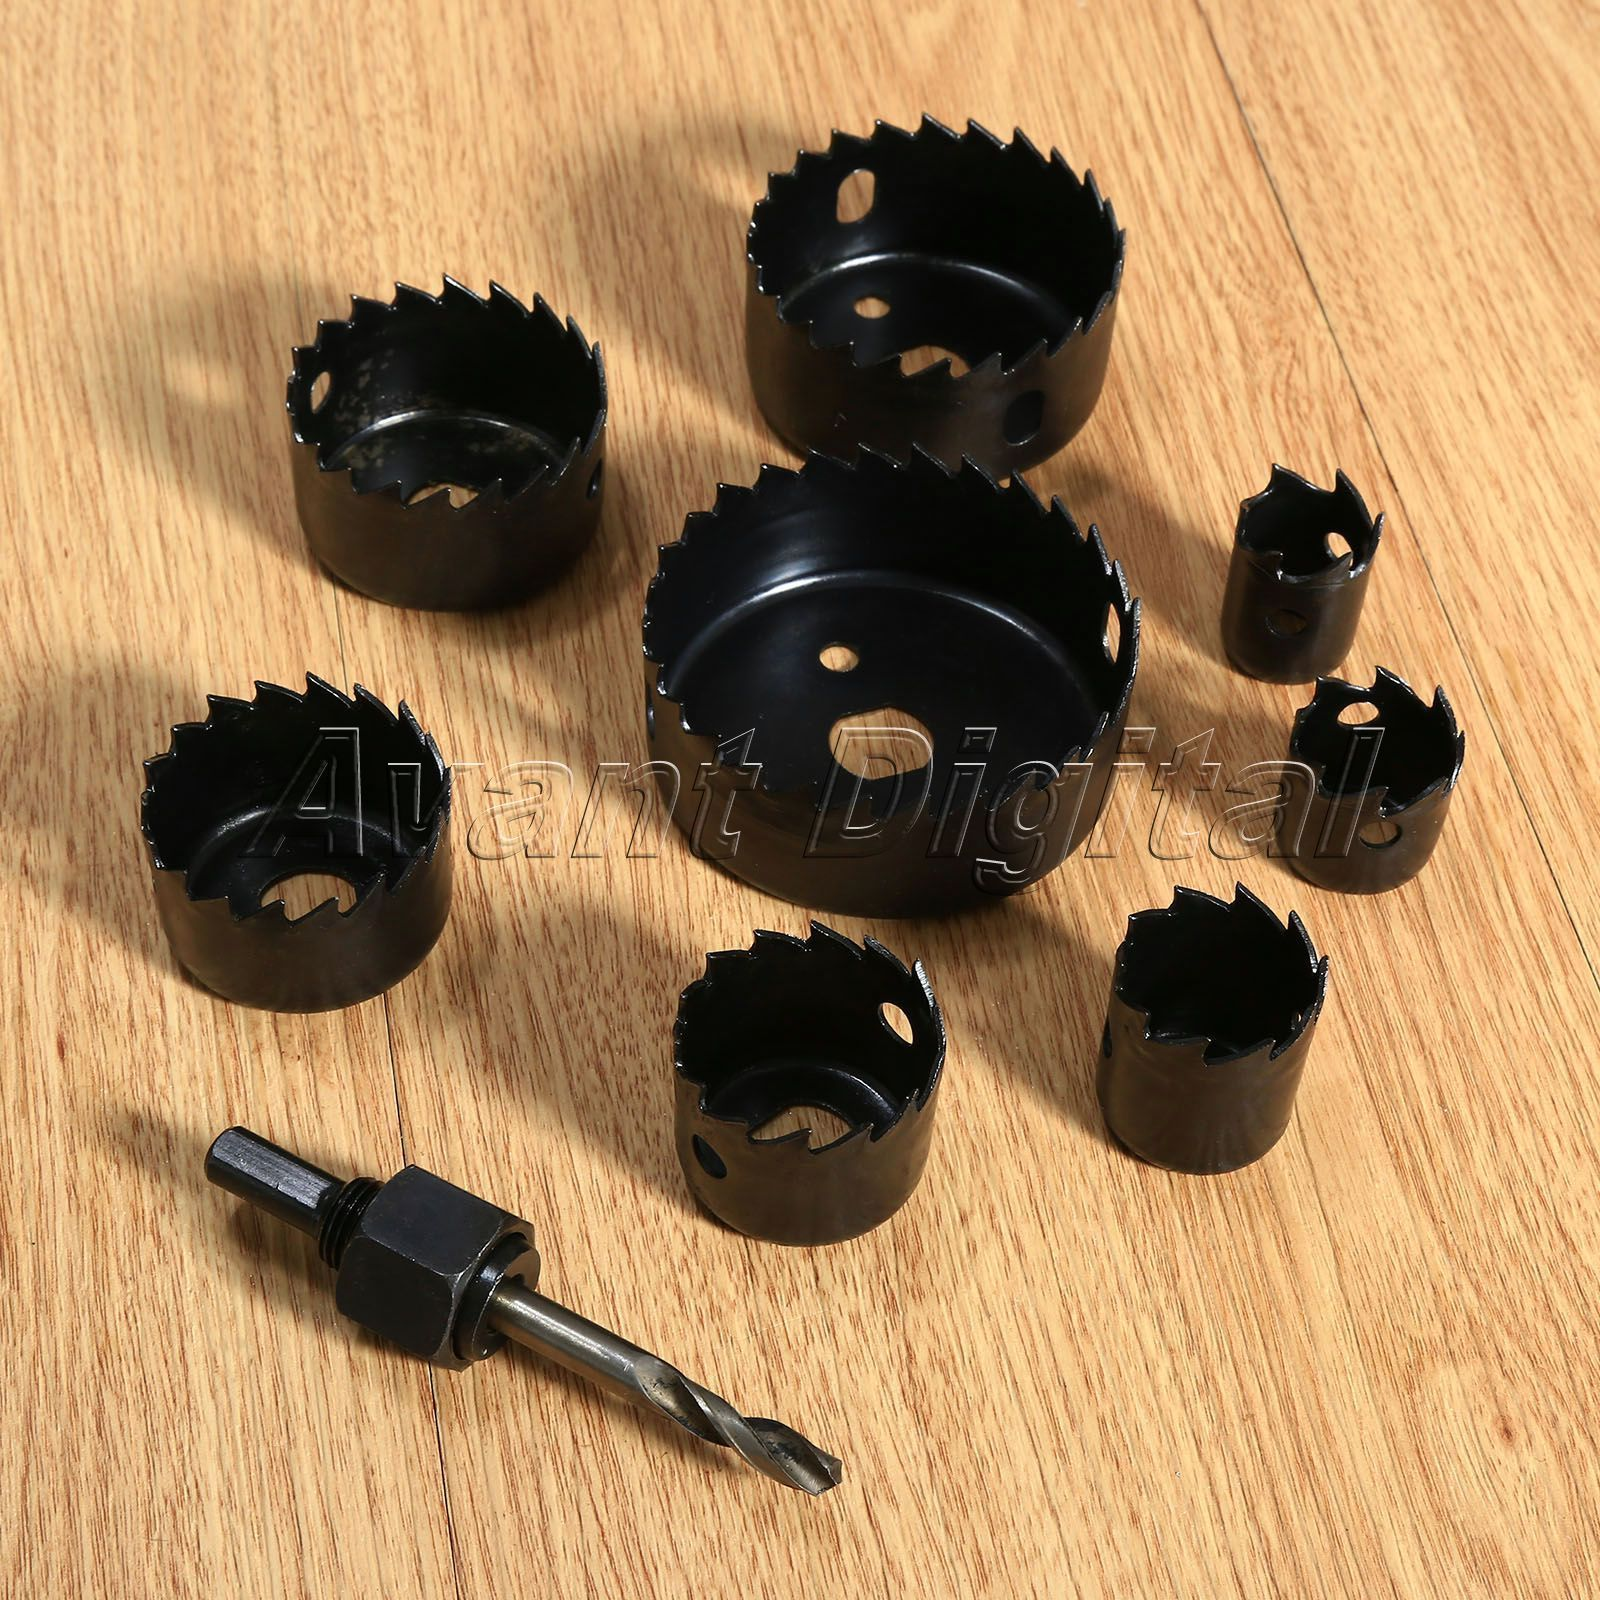 8 Hole Saw Tool Saw Drill Bit Kit 1 Mandrils Metal Cutter Use For Plastic Wood Metal For Sale Metal Cutter Plastic Sheets